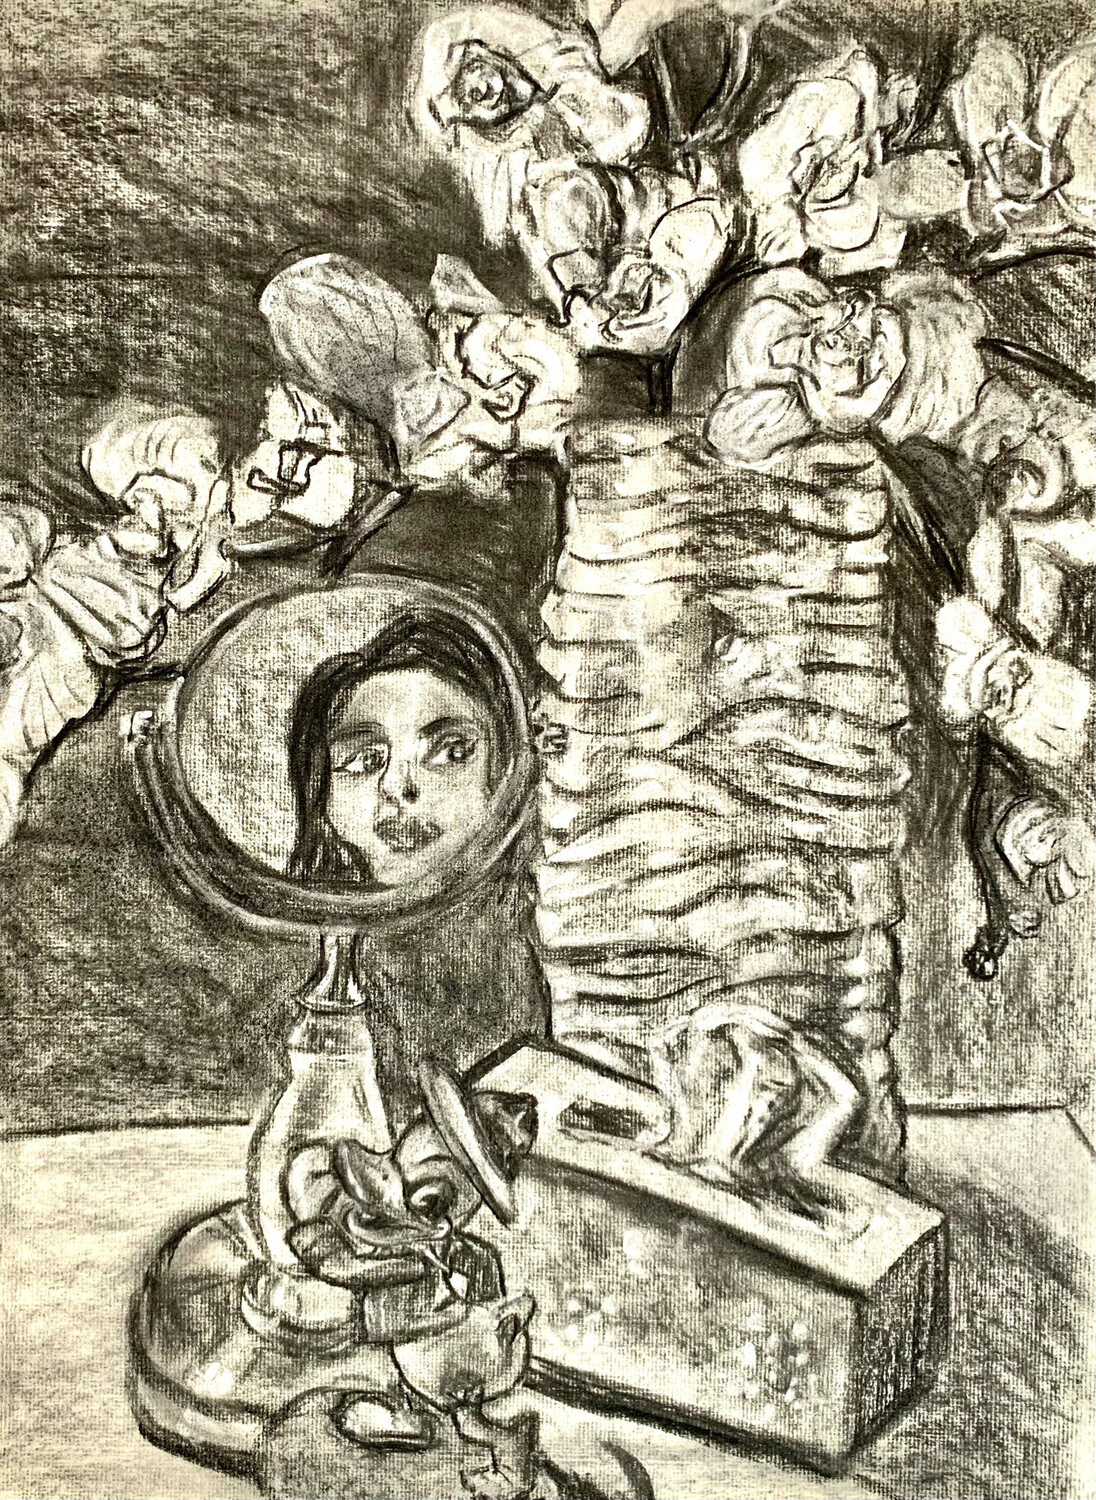 Self Portrait with Mirror - Charcoal